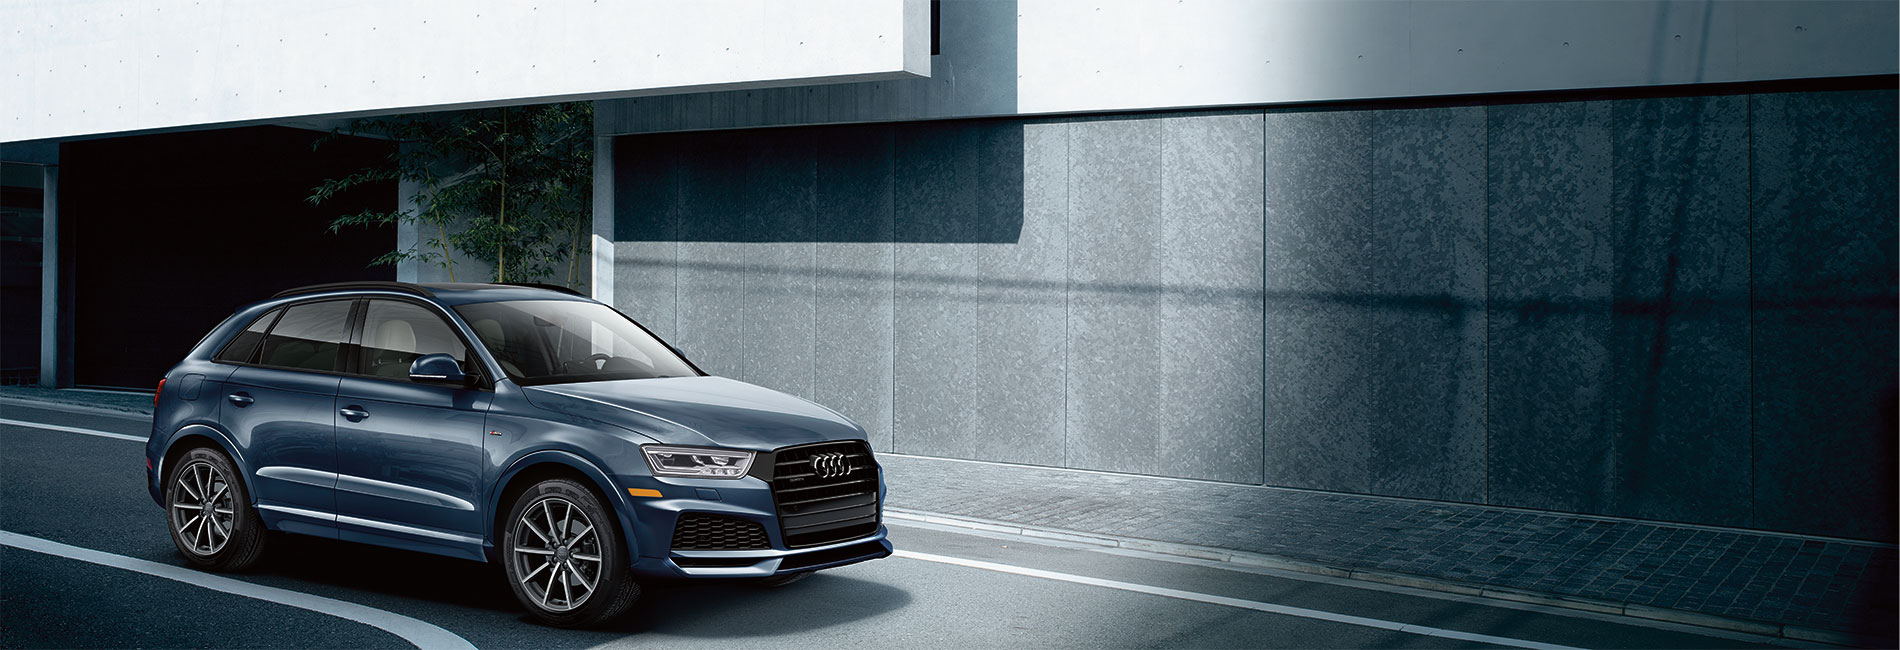 Audi Q3 Exterior Vehicle Features